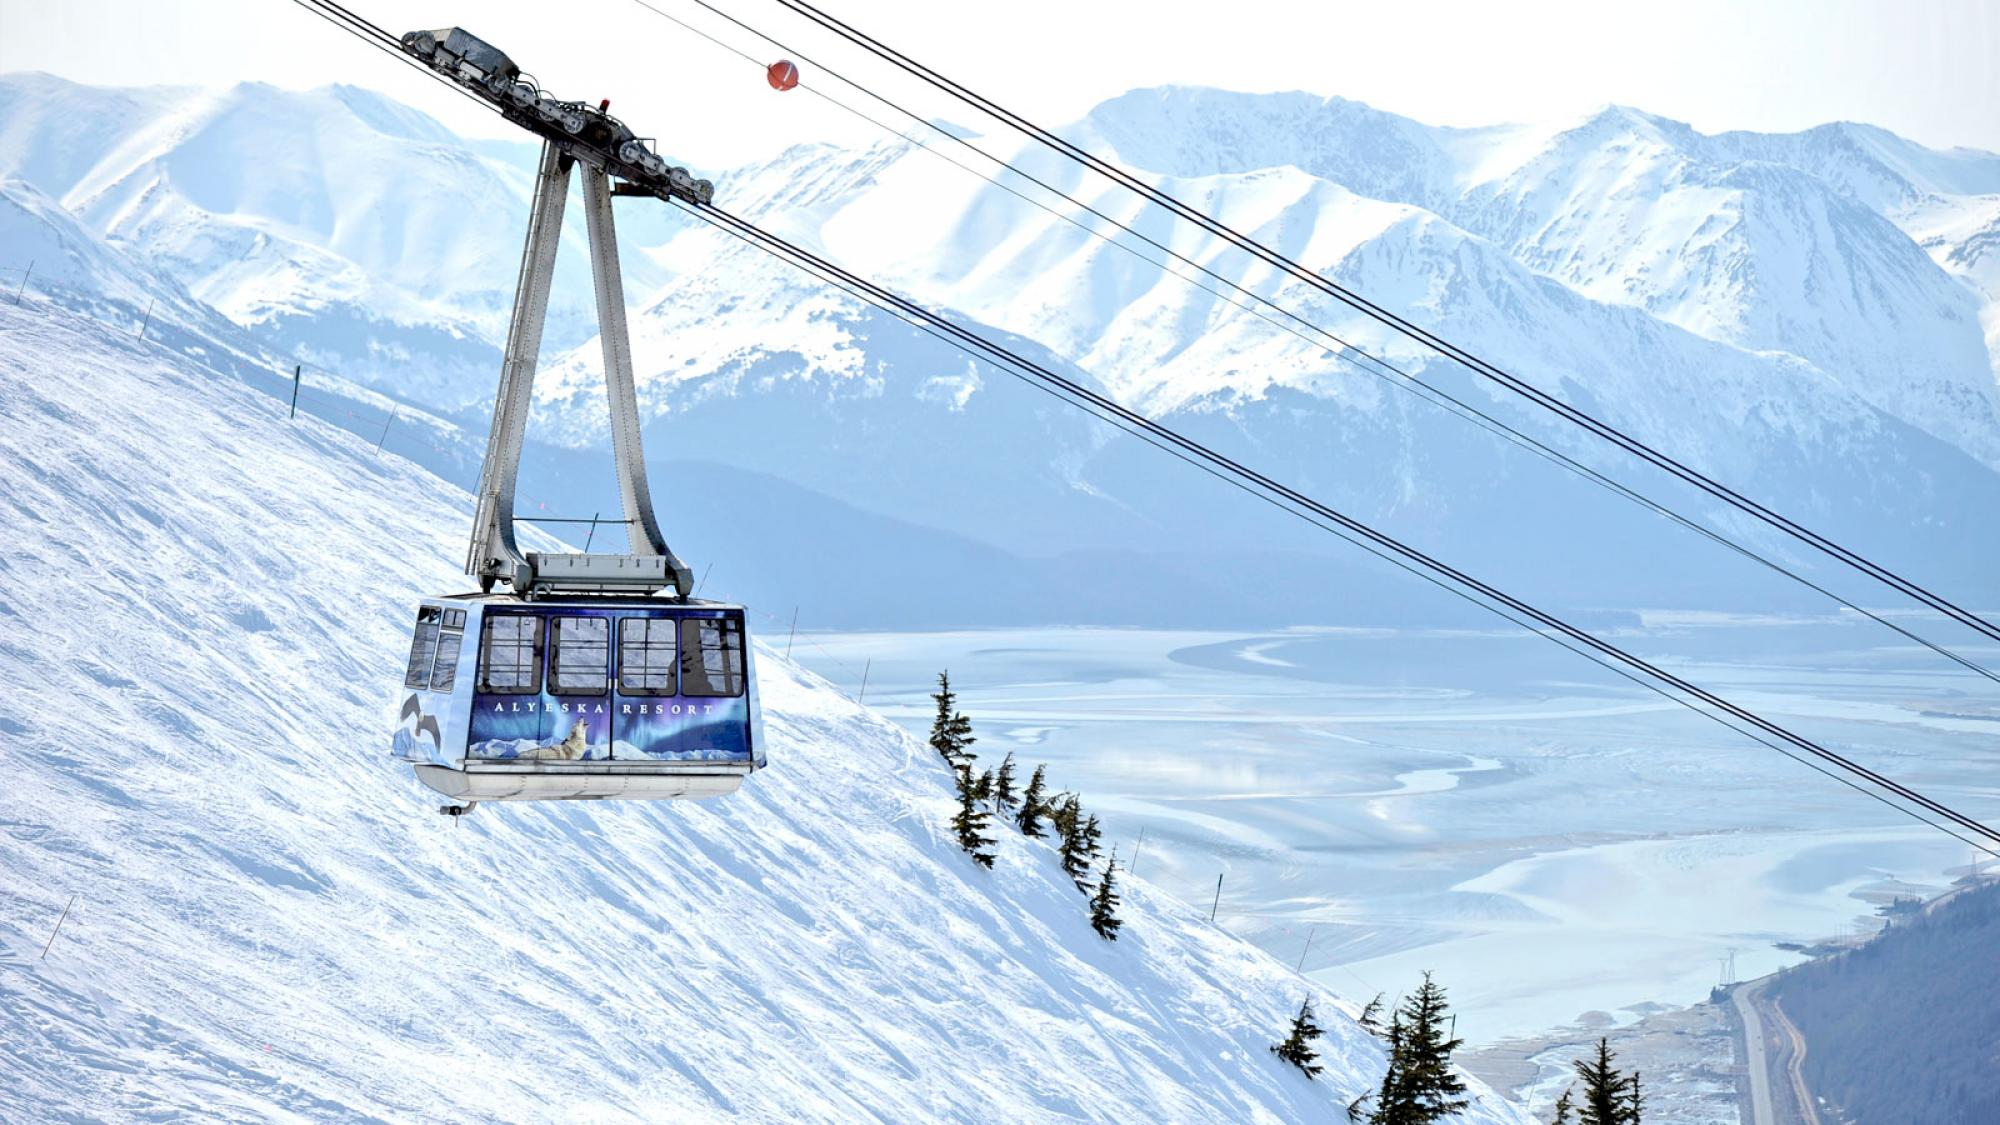 Alyeska resort gondola car